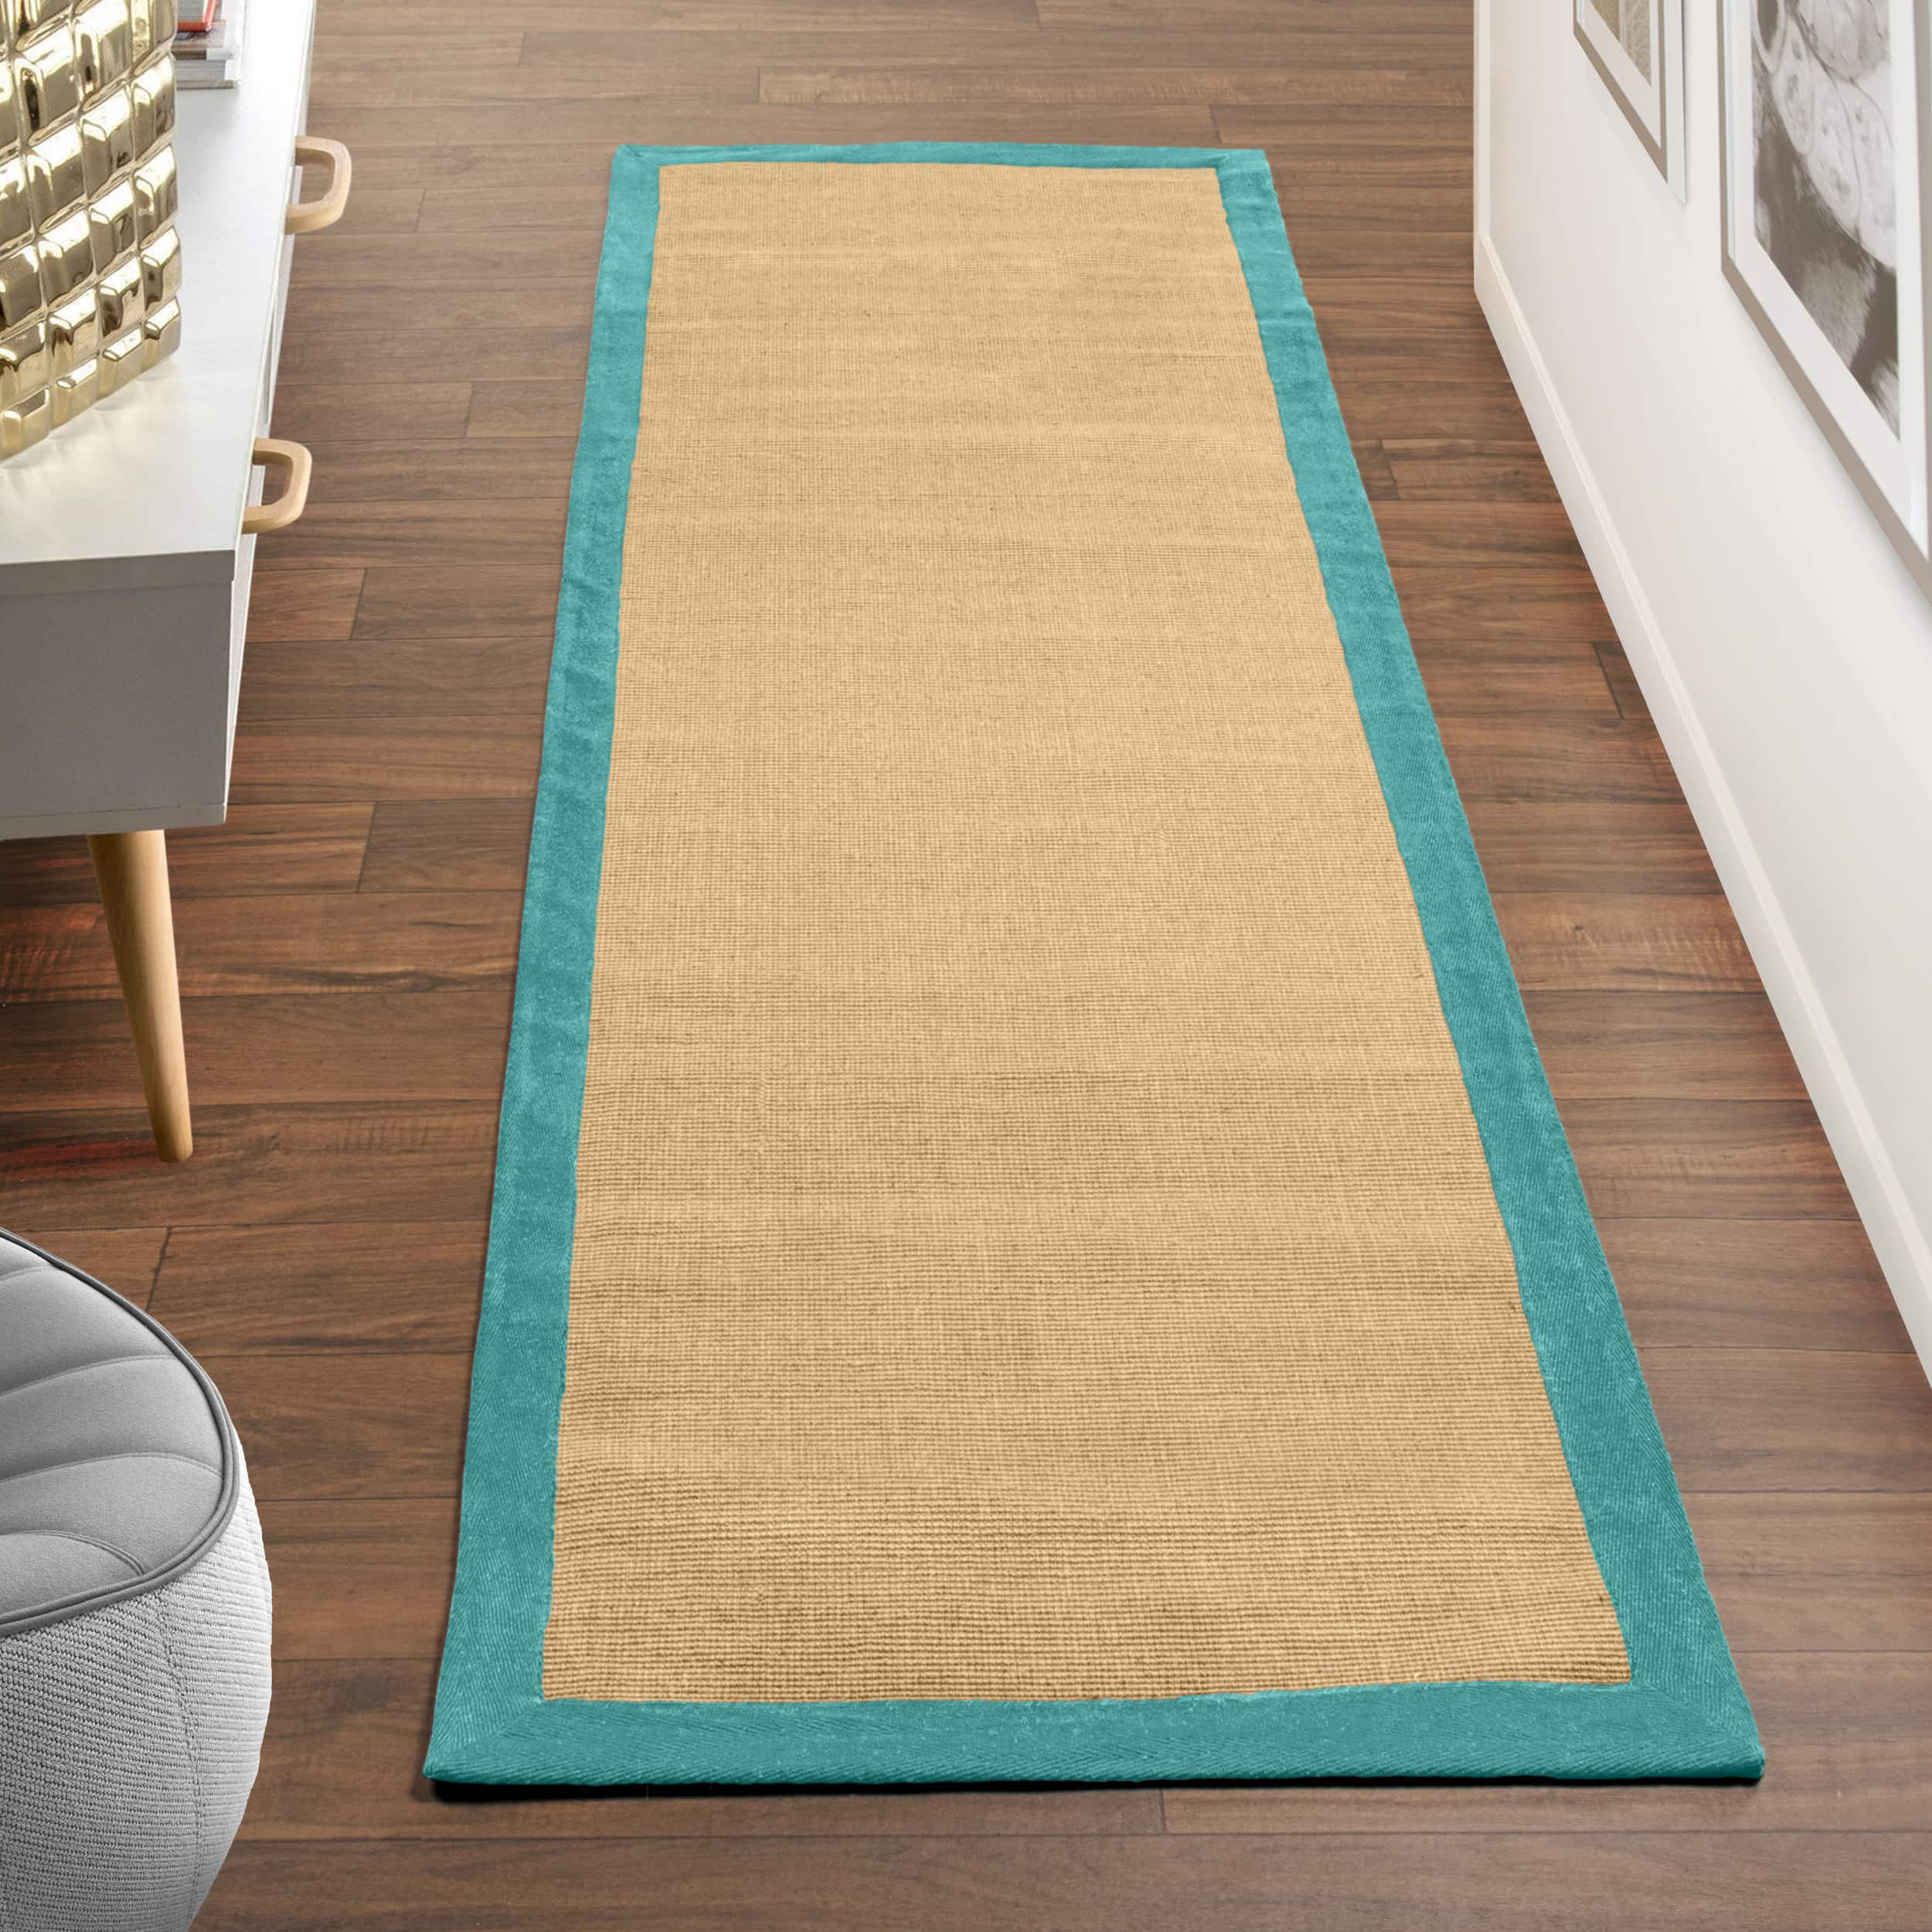 """2'6"""" x 8' Impressions Eilonwy Jute Hand-Woven Indoor Area Rug (Turquoise) $25.70 & More at Walmart"""